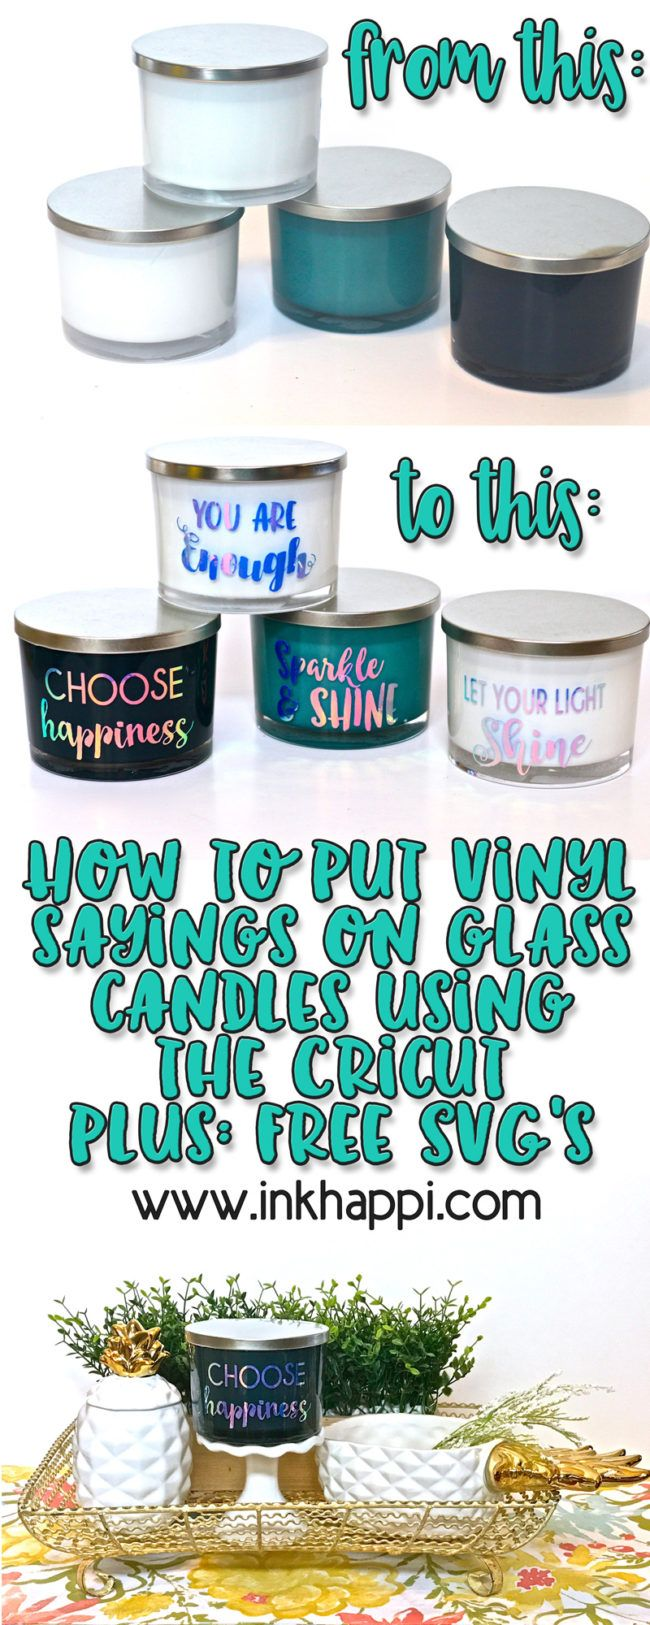 Vinyl sayings on glass candles using Cricut... You will fall in love with this easy project #cricutvinylprojects